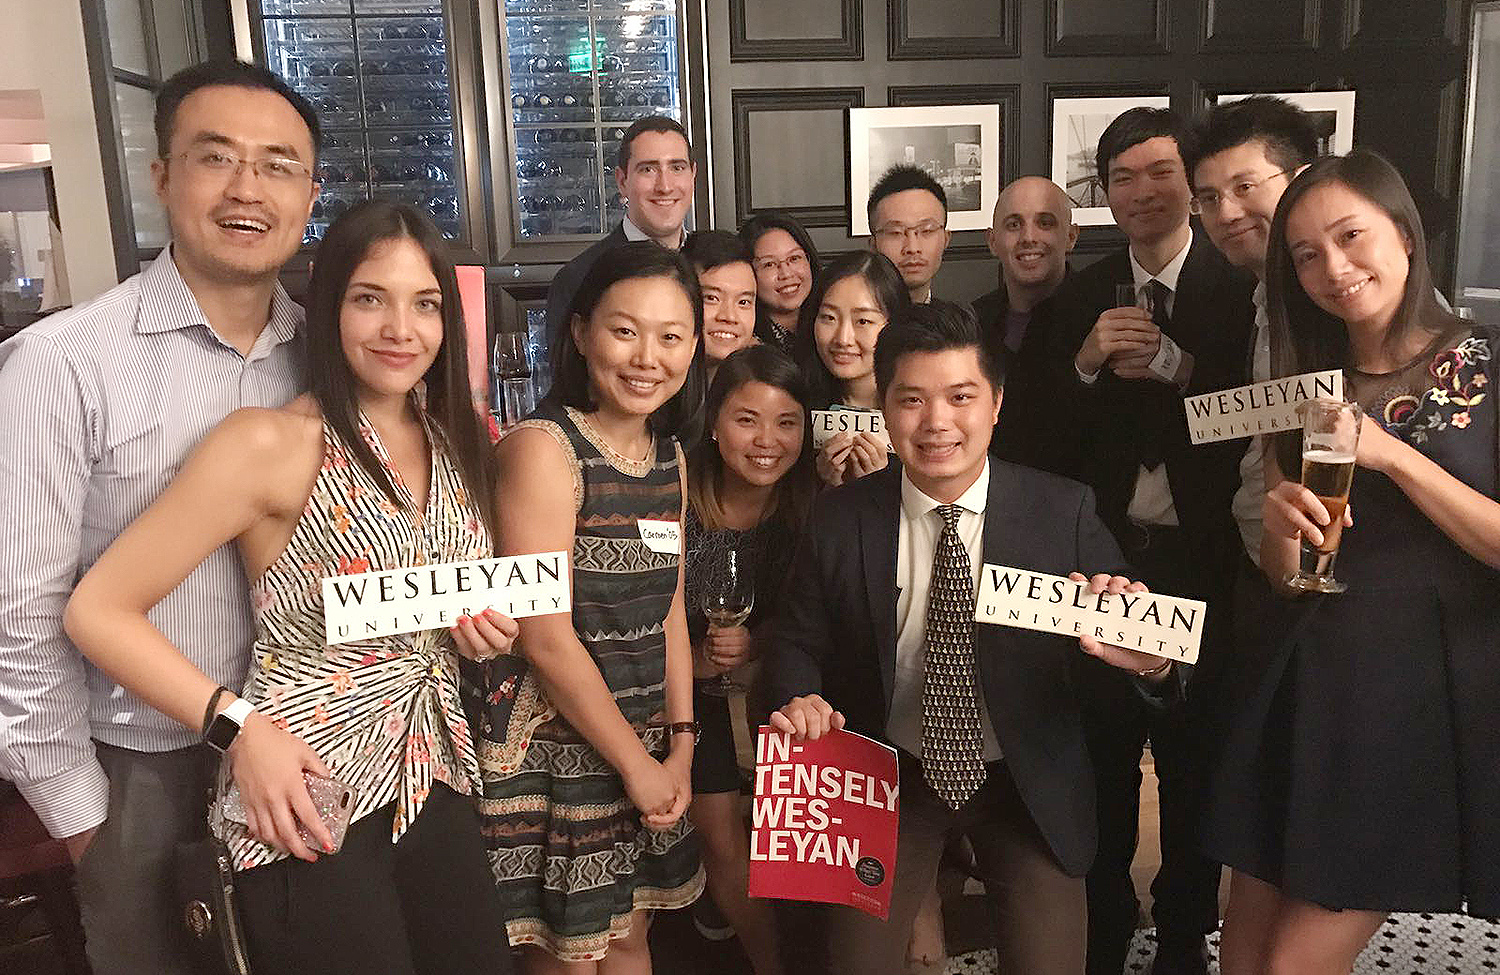 The Hong Kong Summer Sendoff was hosted by Will McLane '92, and organized by Carmen Cheung '05 on July 7.